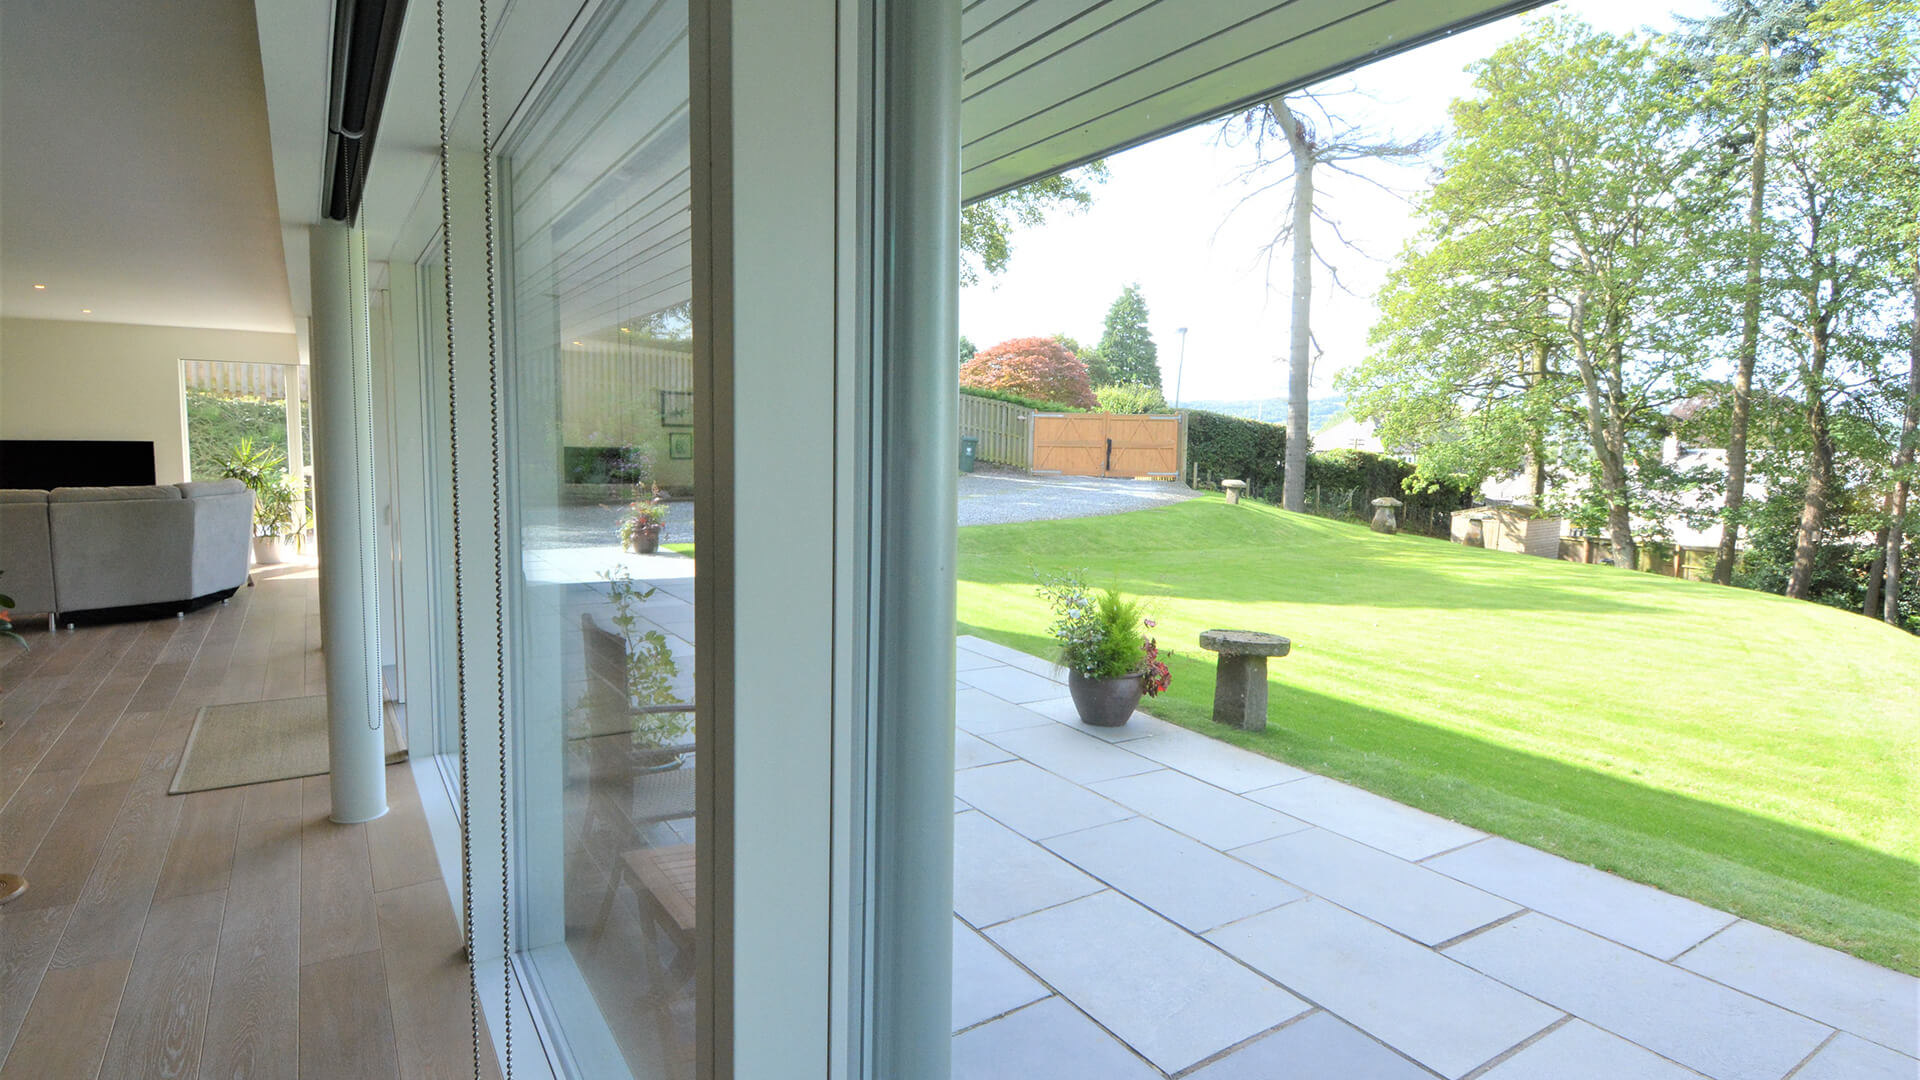 Bellwood Timber Frame House front garden from inside